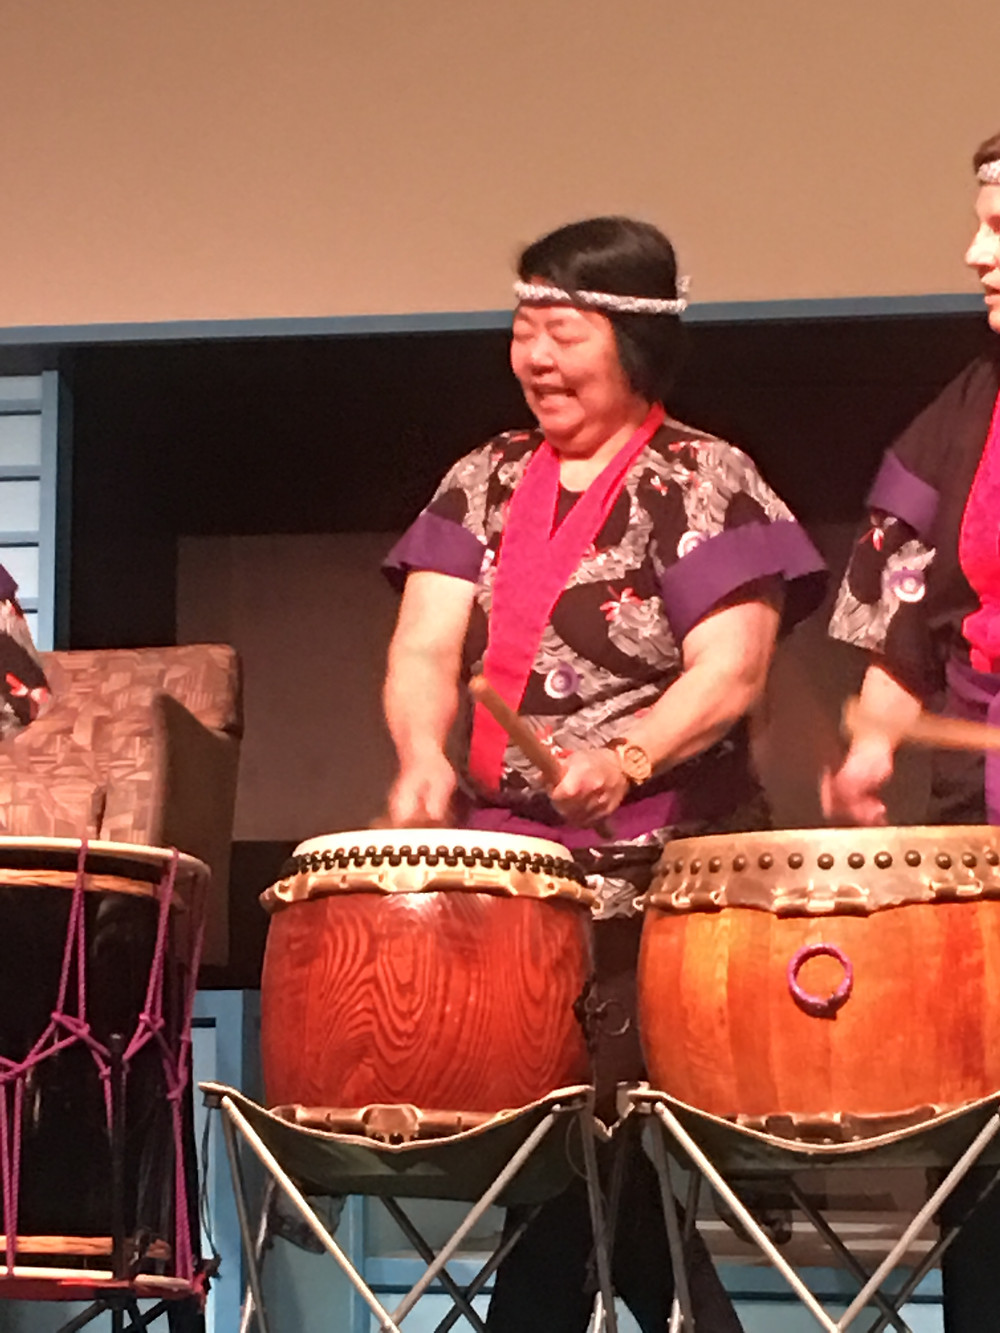 Toni Yagami playing Taiko drums